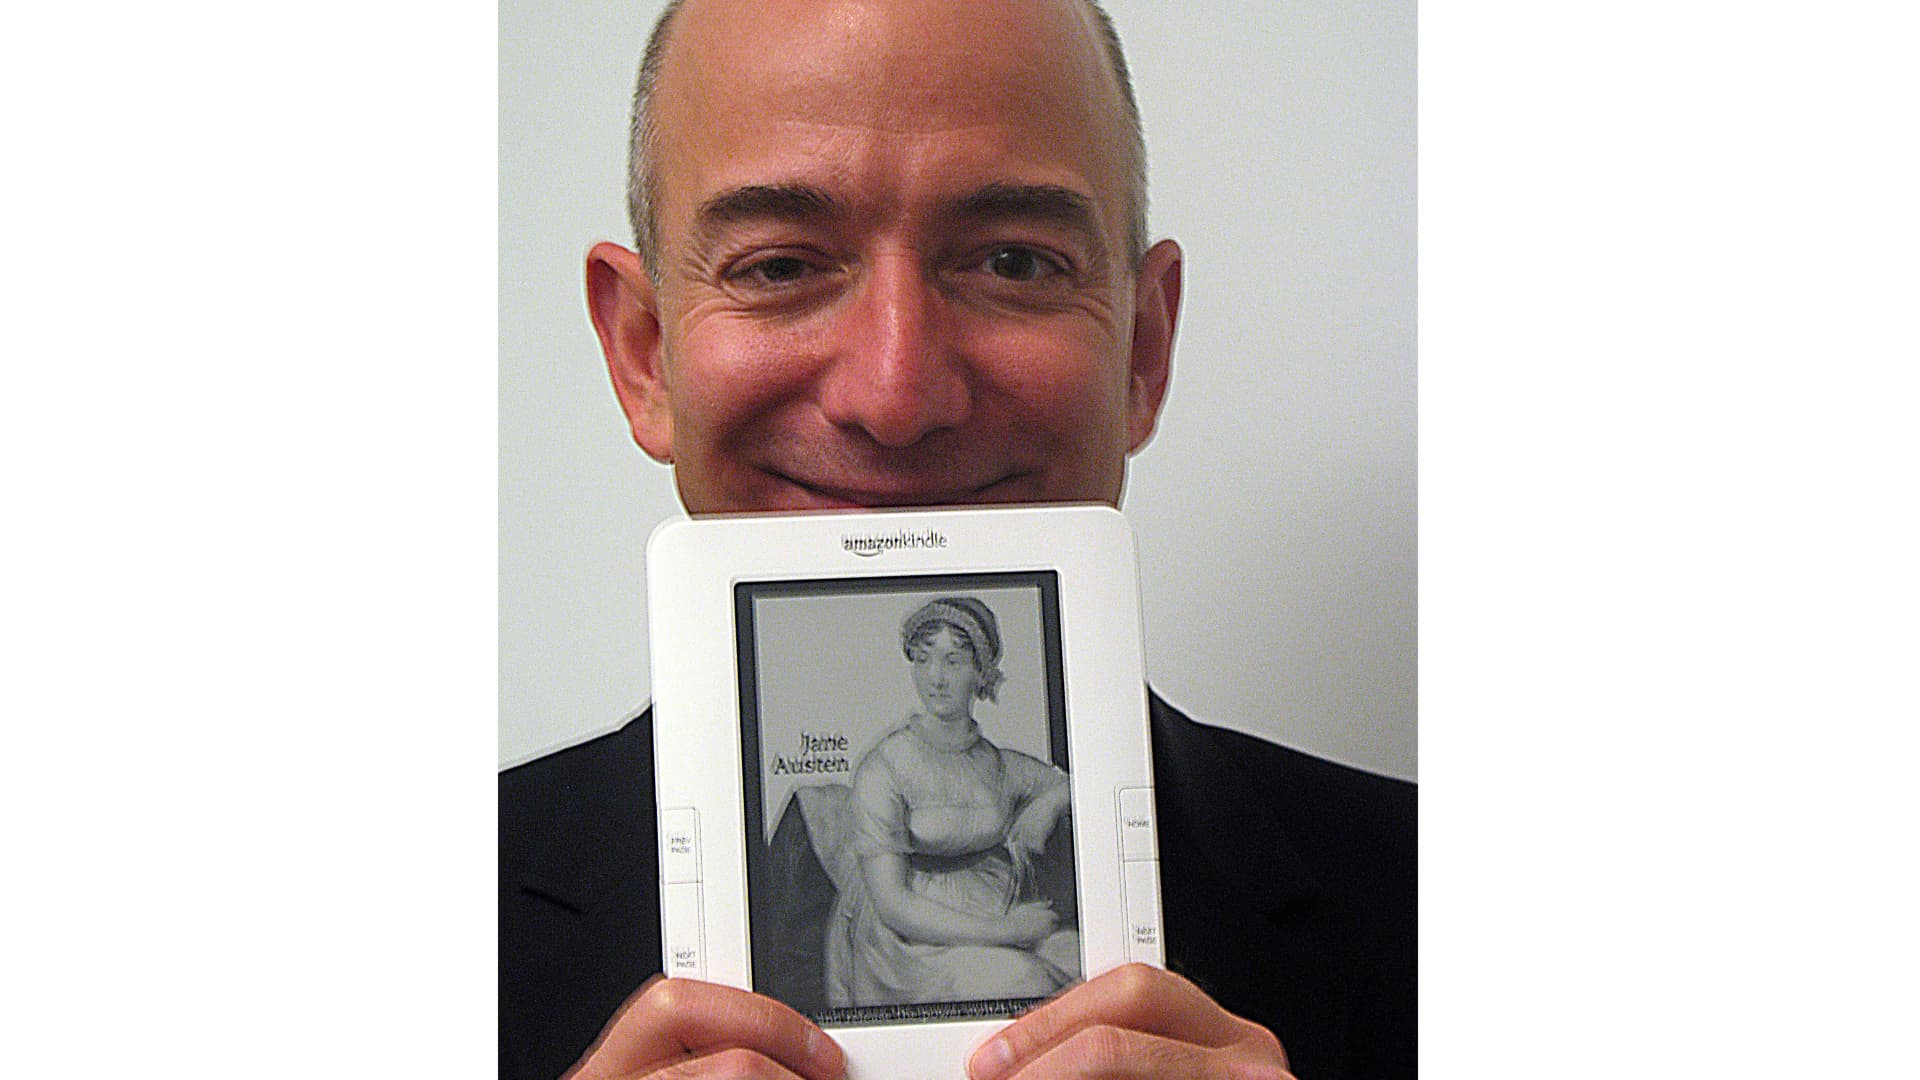 The 12 Books That Helped Form Billionaire Jeff Bezos Leadership Style